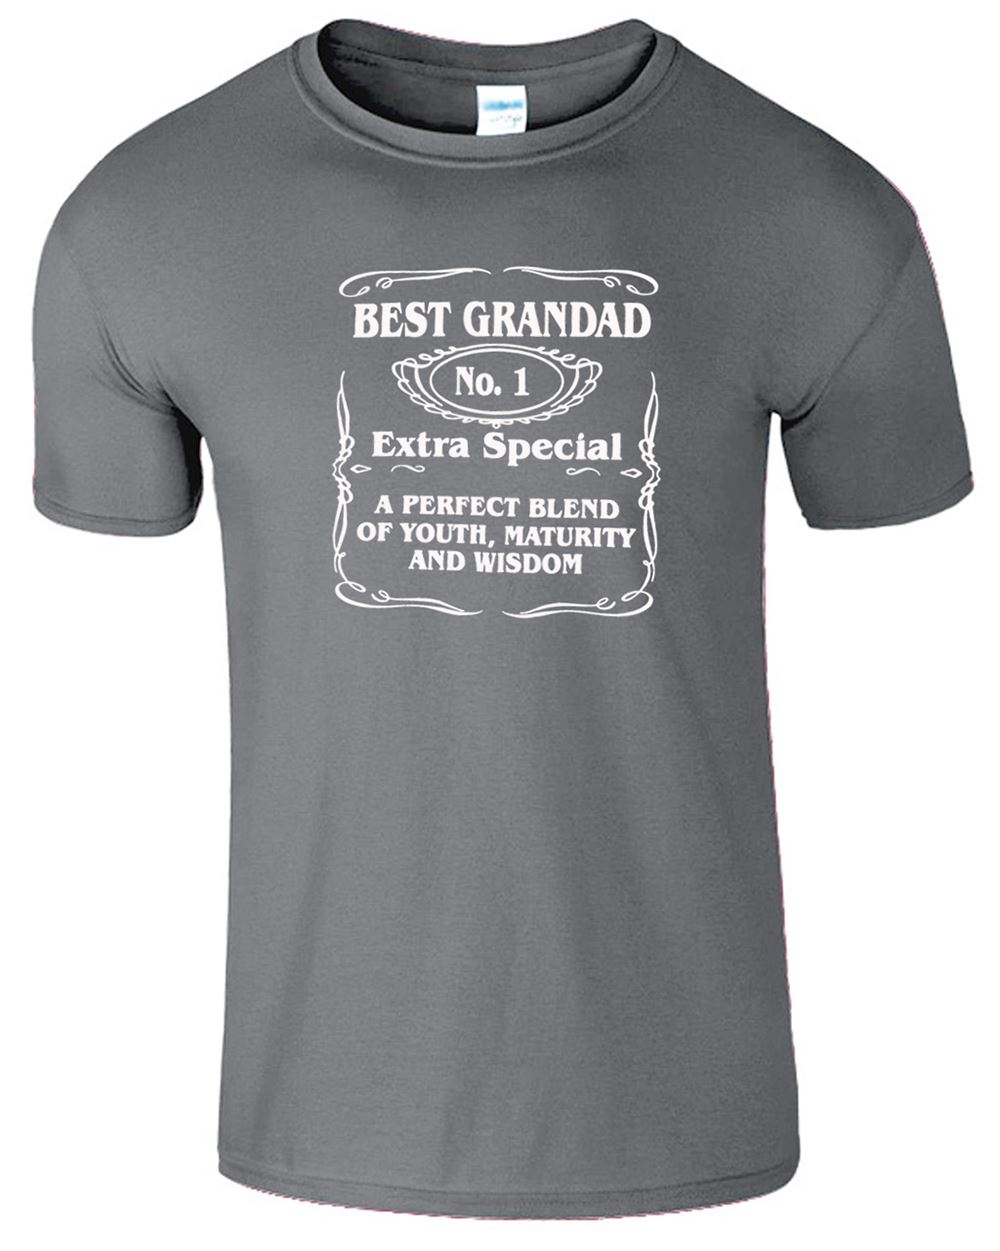 Xxl shirt design